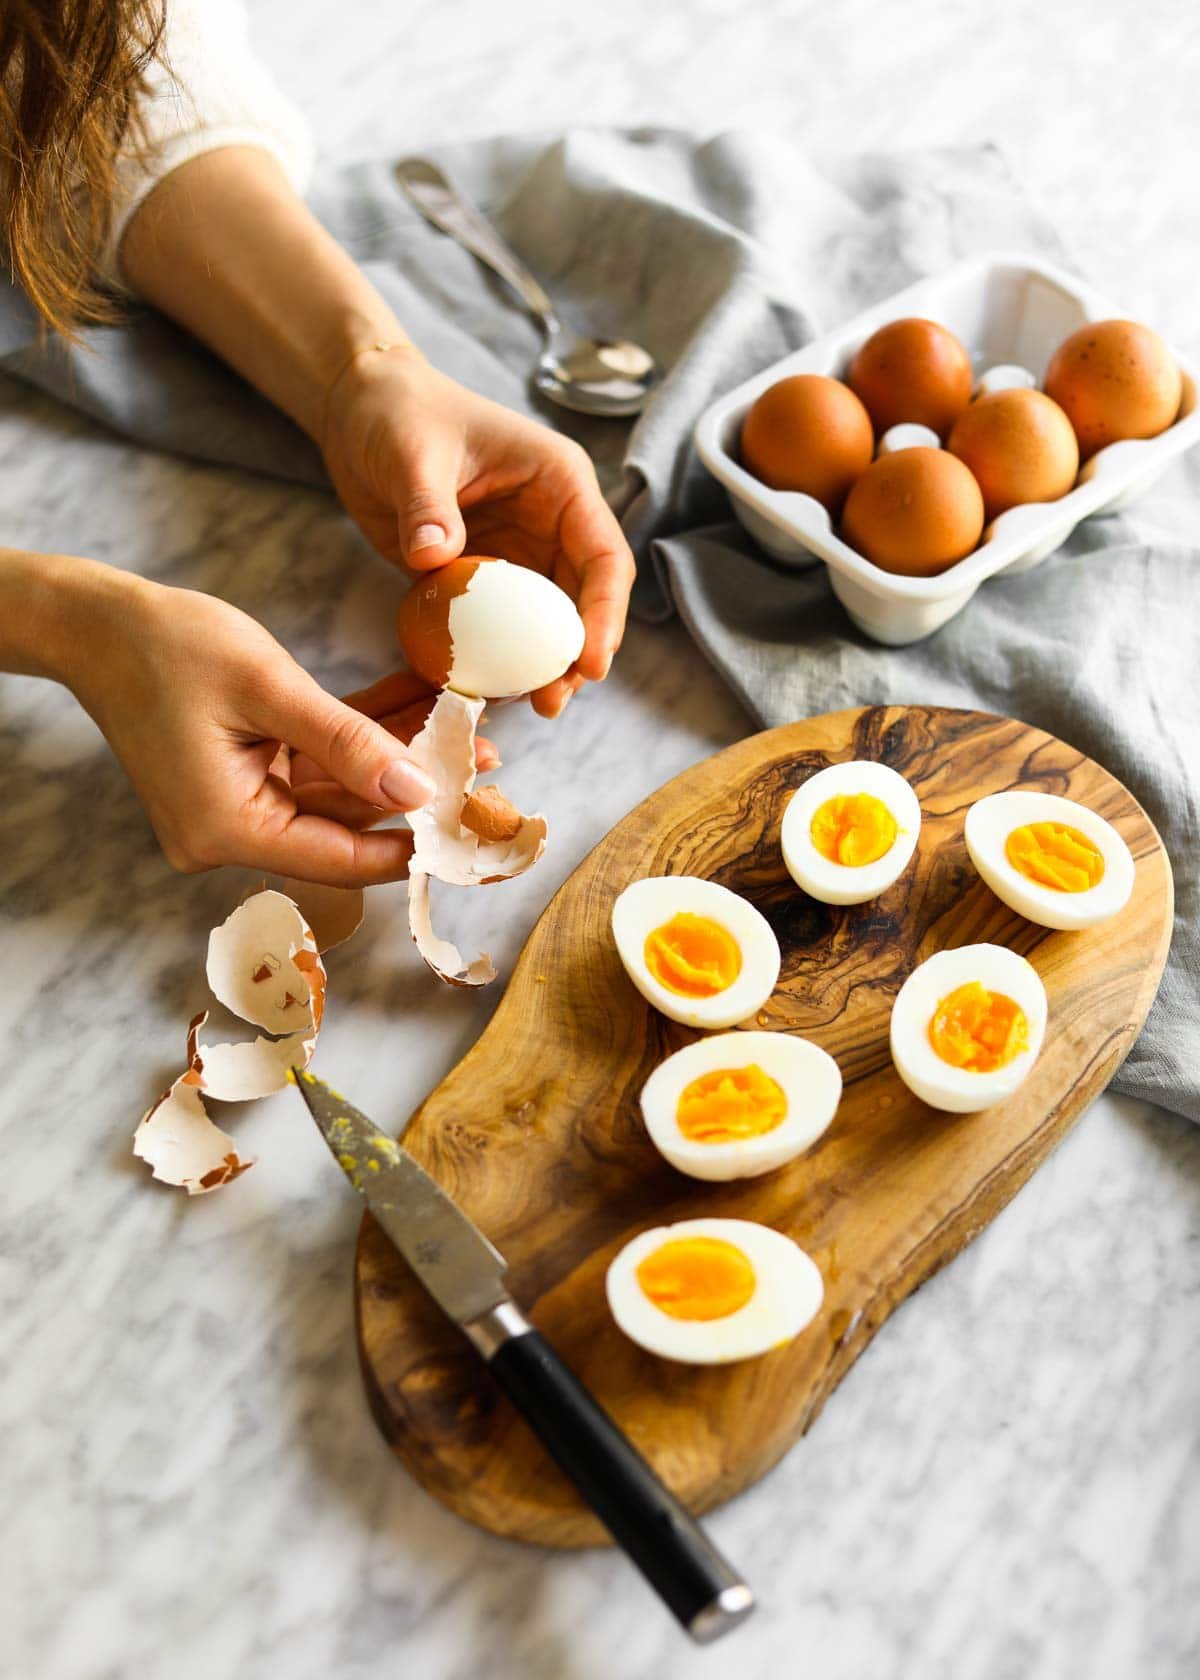 Soft boiled egg being peeled with peeled and cut soft boiled eggs on cutting board and knife.